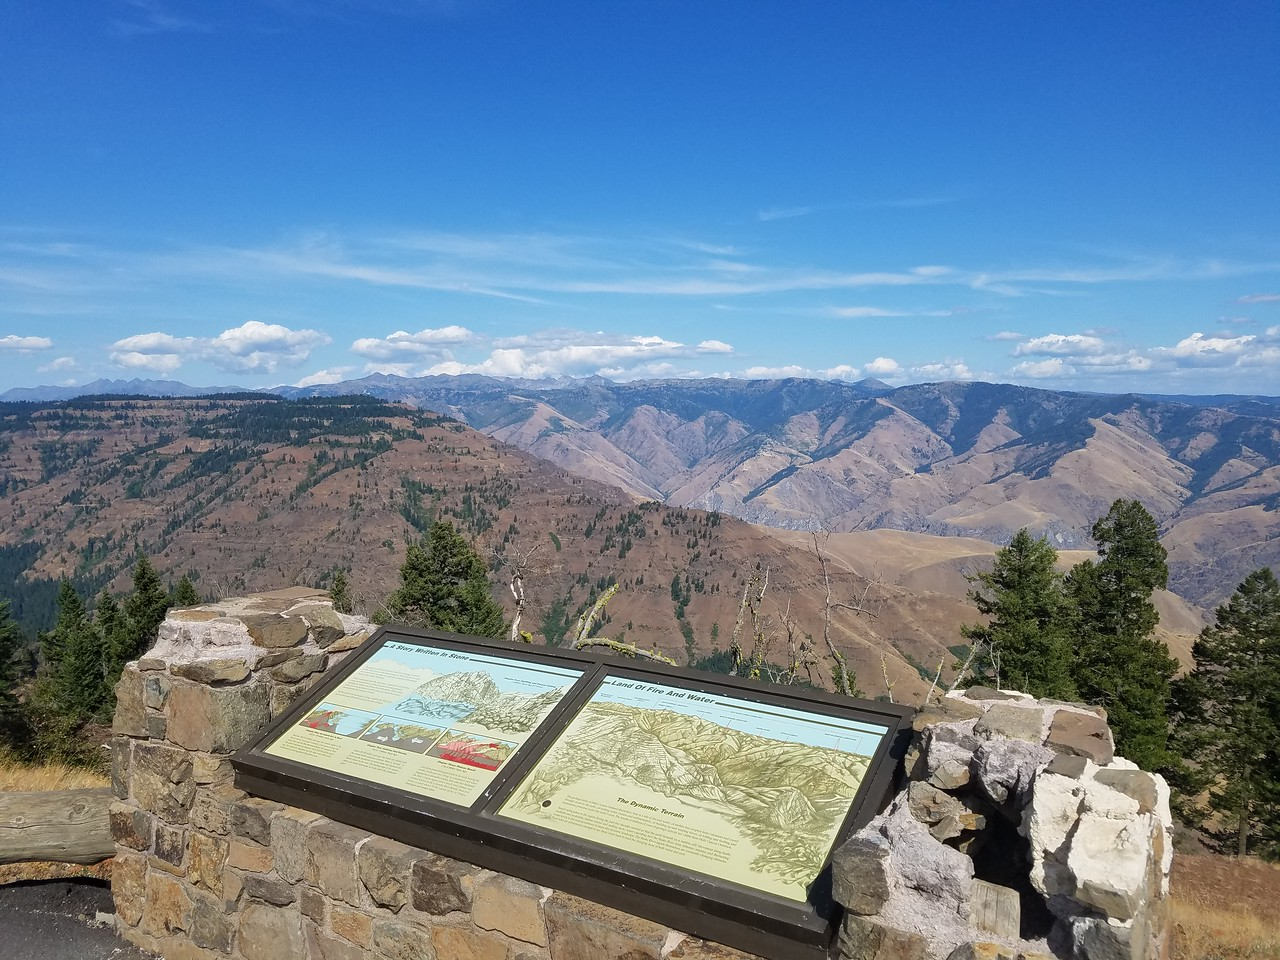 The Hells Canyon Overlook